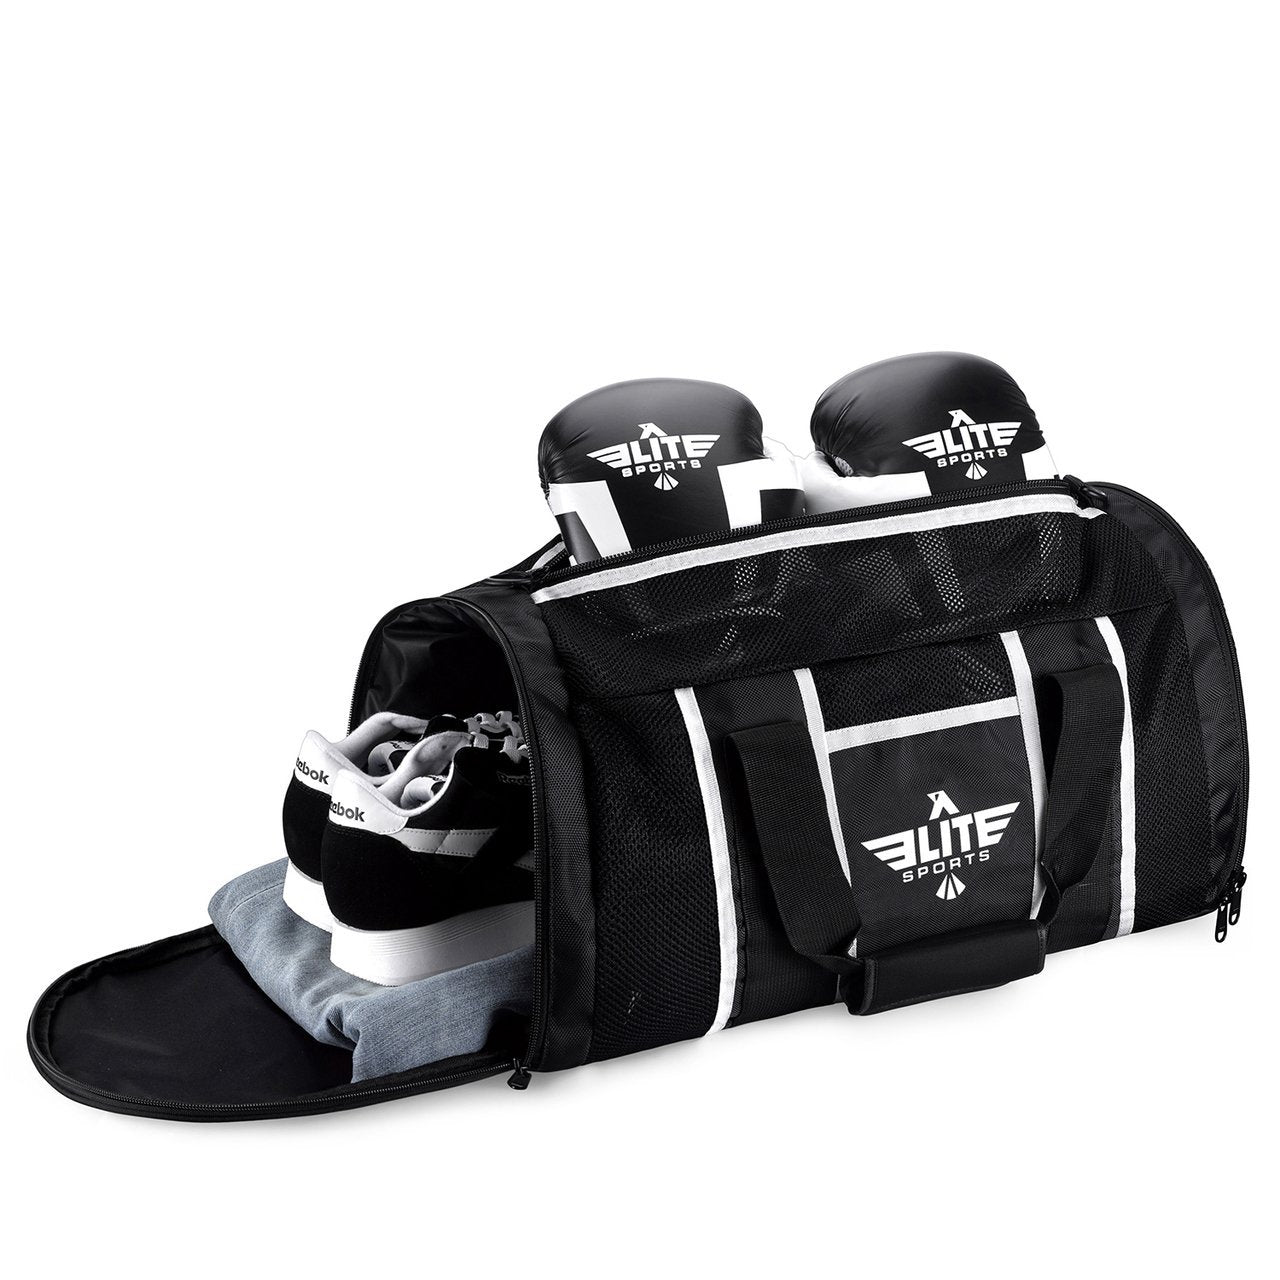 Load image into Gallery viewer, Elite Sports Mesh Black Large MMA Gear Gym Bag